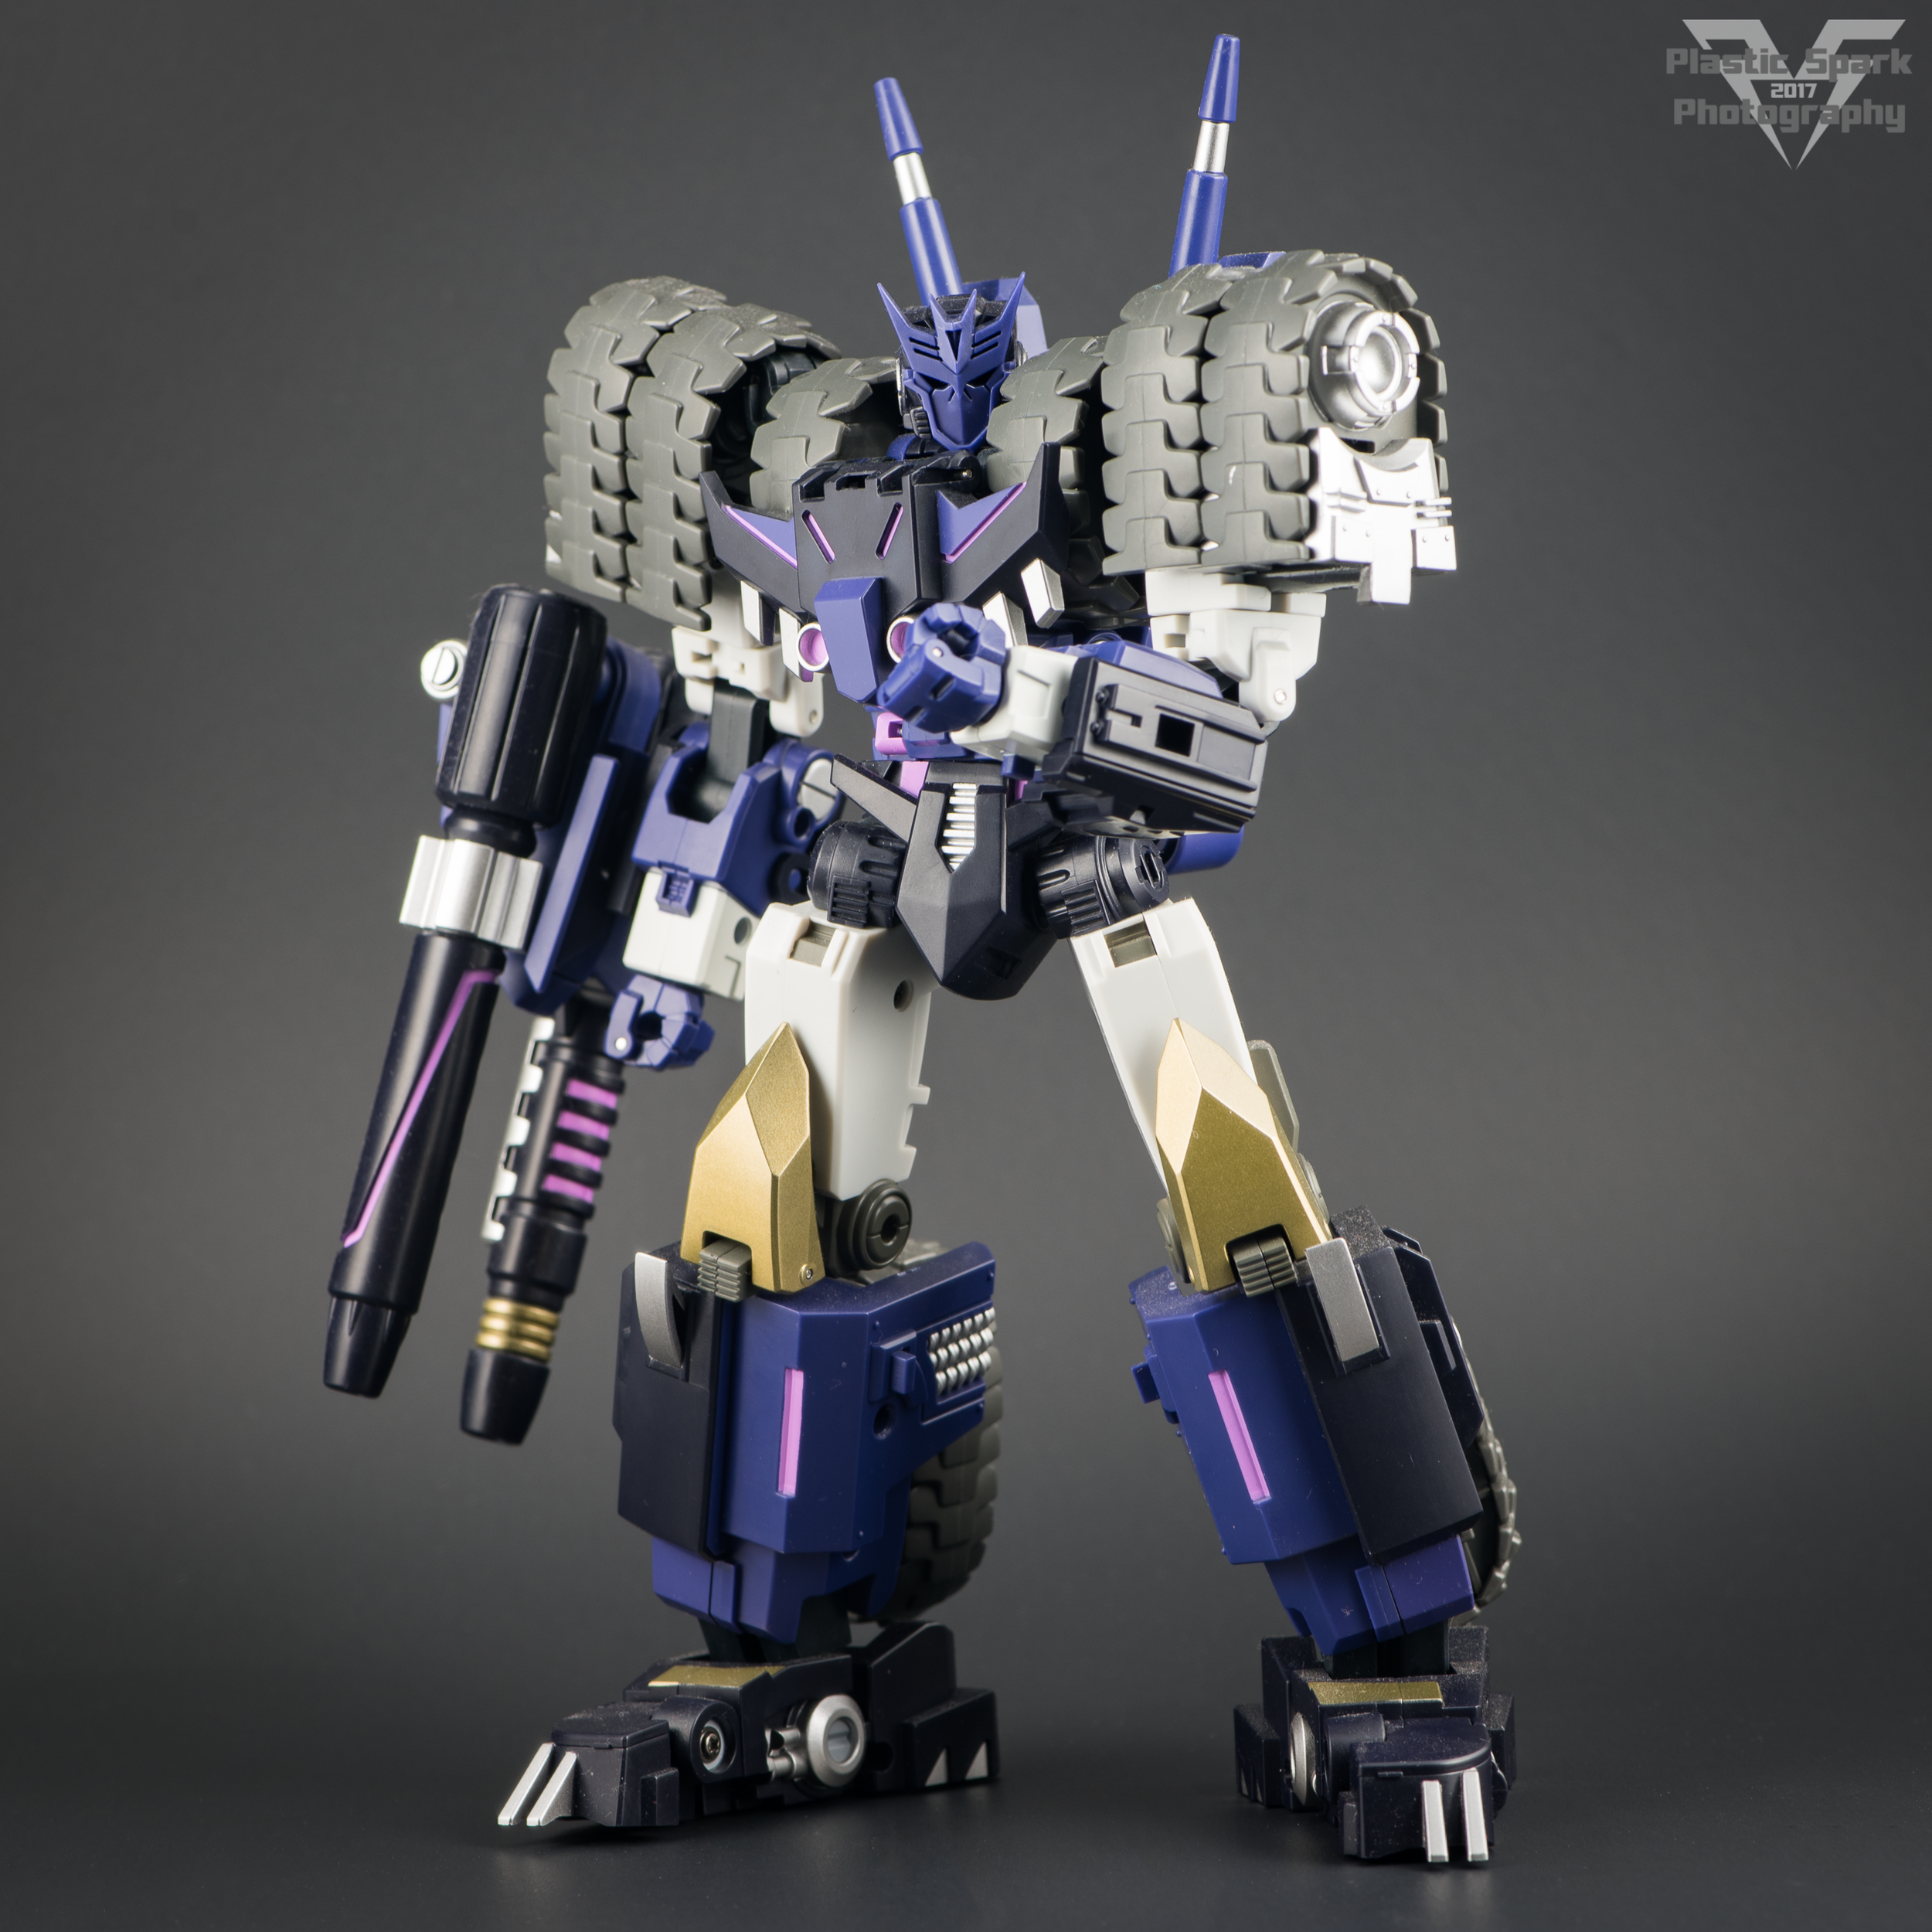 Mastermind-Creations-Kultur-(1-of-5).png